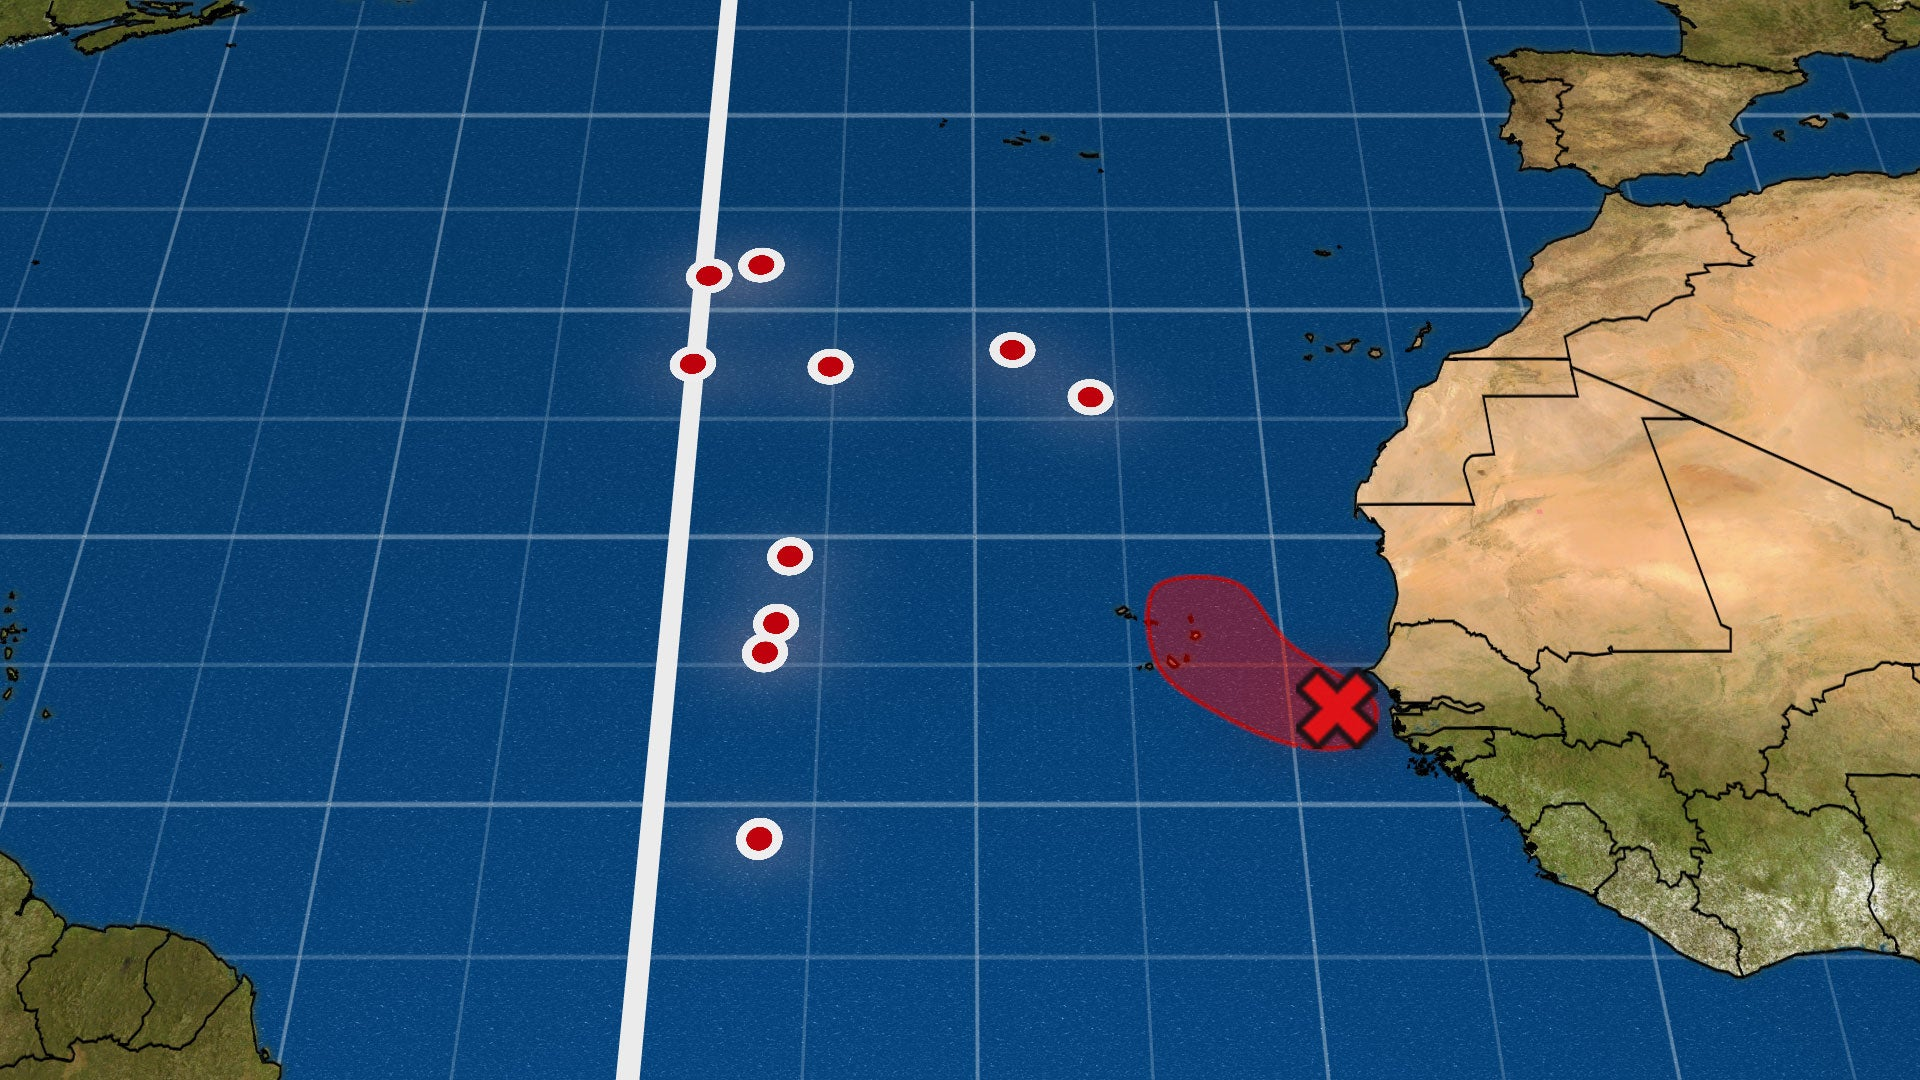 Atlantic Tropical Depression Could Form in a Rare Location for So Late in the Hurricane Season